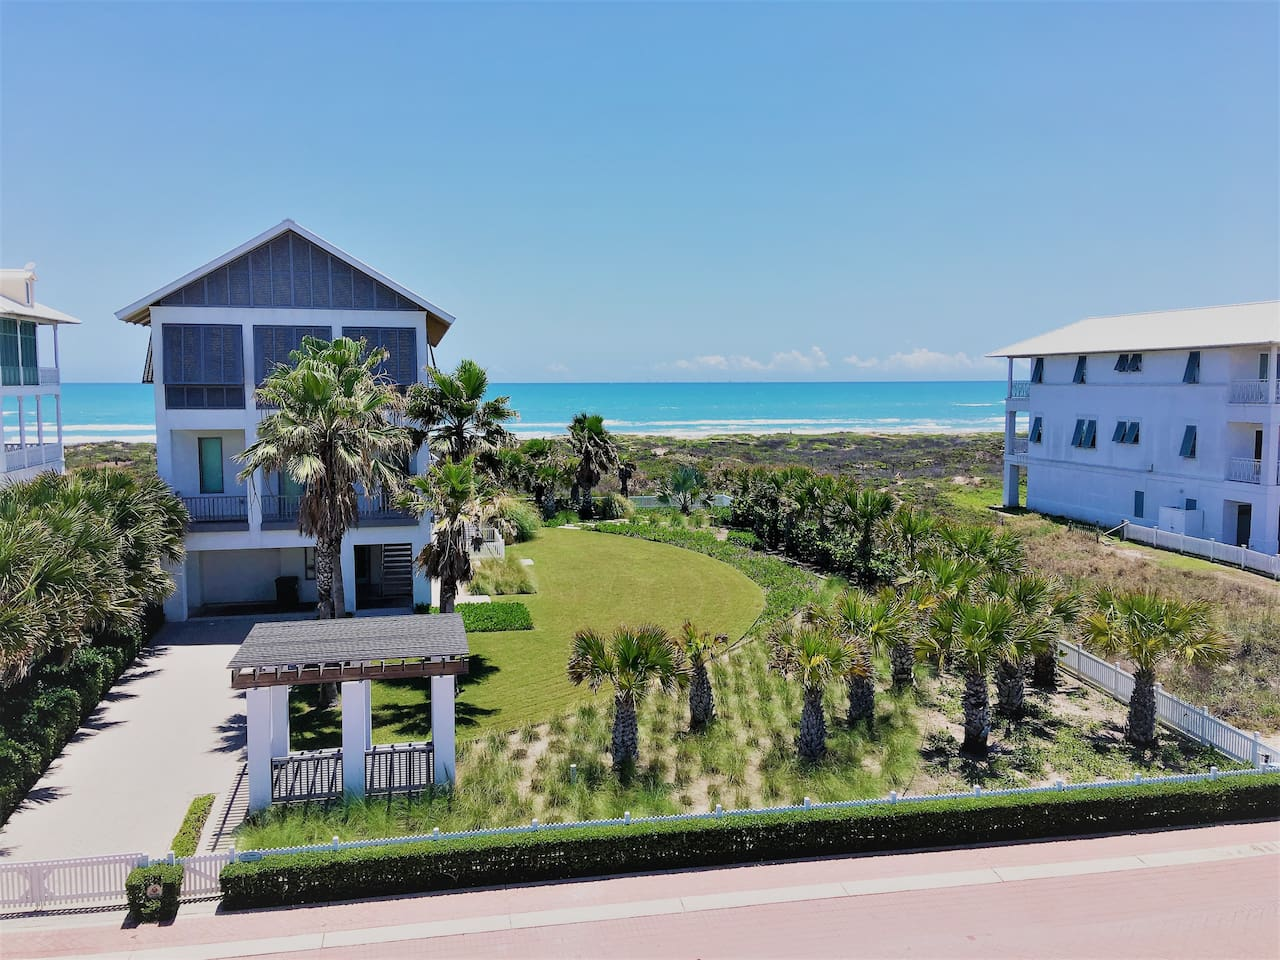 """Beach view from the """"Family Tides"""" house at The Shores"""